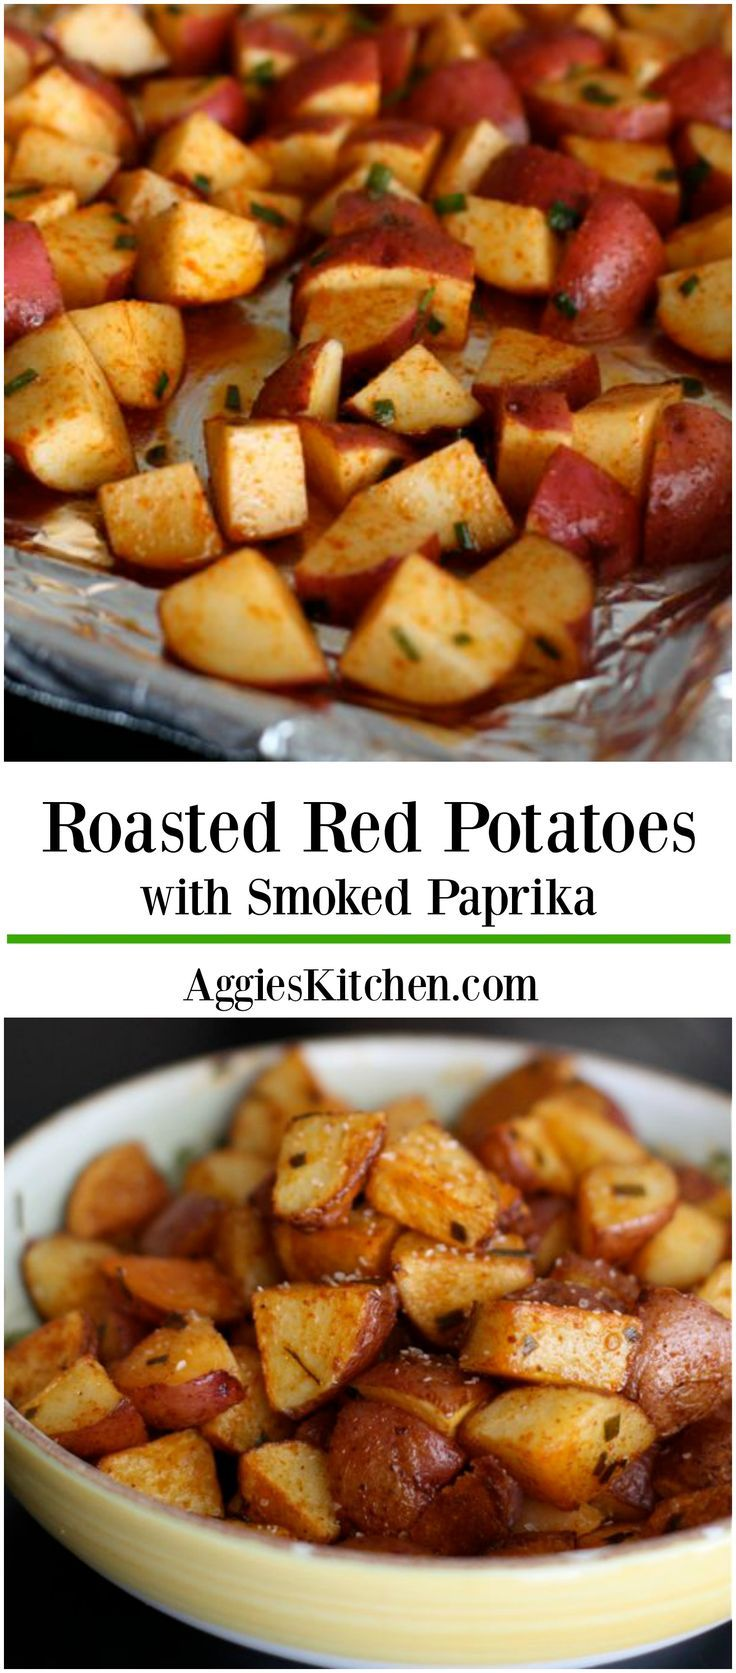 Best 25 smoked paprika ideas on pinterest smoked for Side dishes to go with smoked chicken